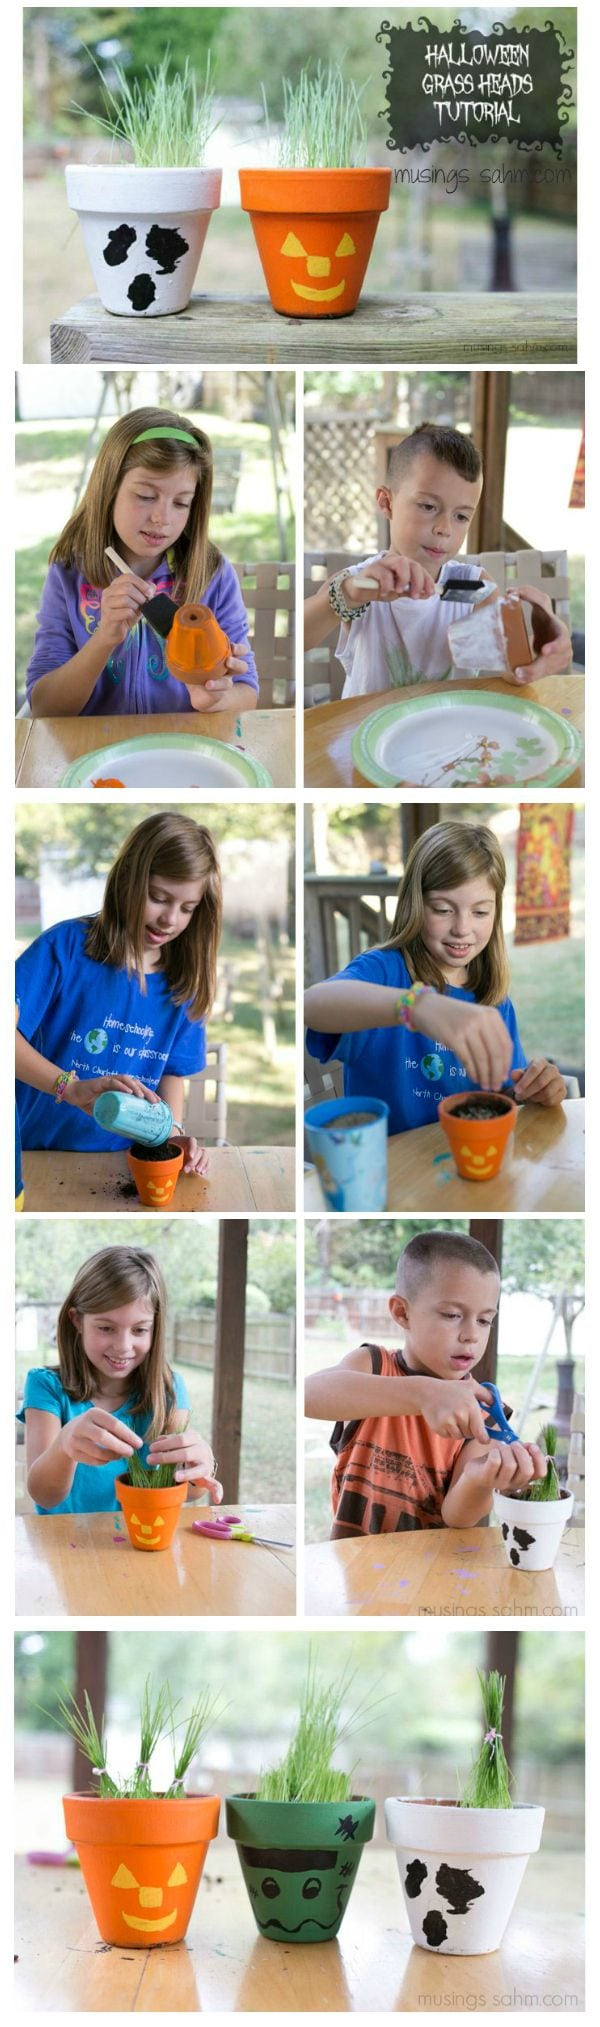 Kids will love making their own scary pot with this fun Halloween Grass Heads activity, then planting and caring for their grass. Once it's grown, they can cut it and tie the grass into fun styles!